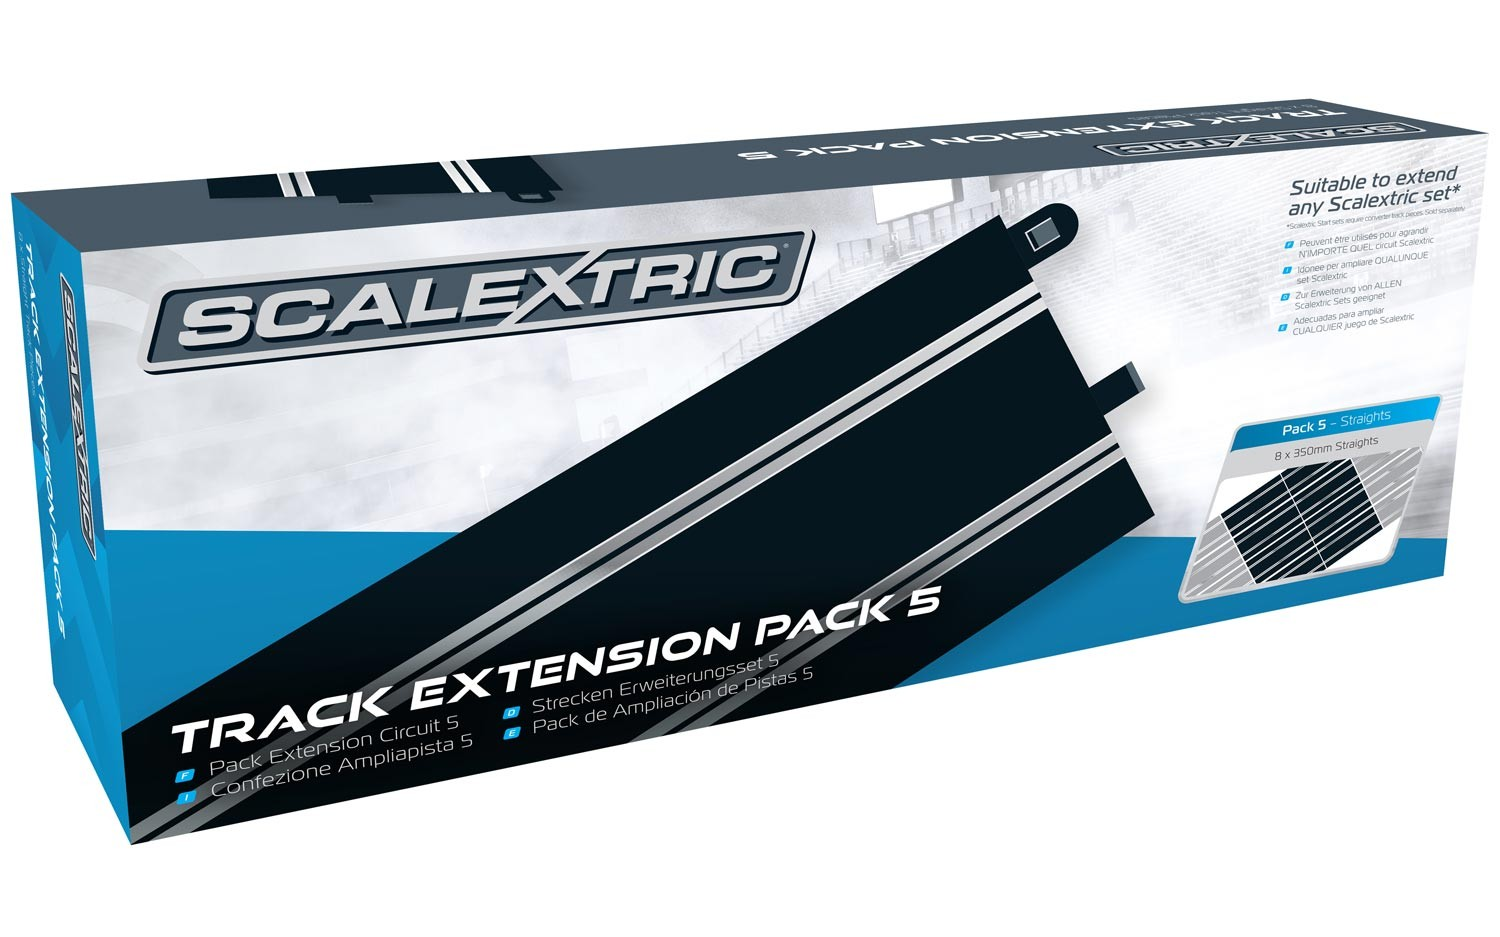 Track Extension Pack 5